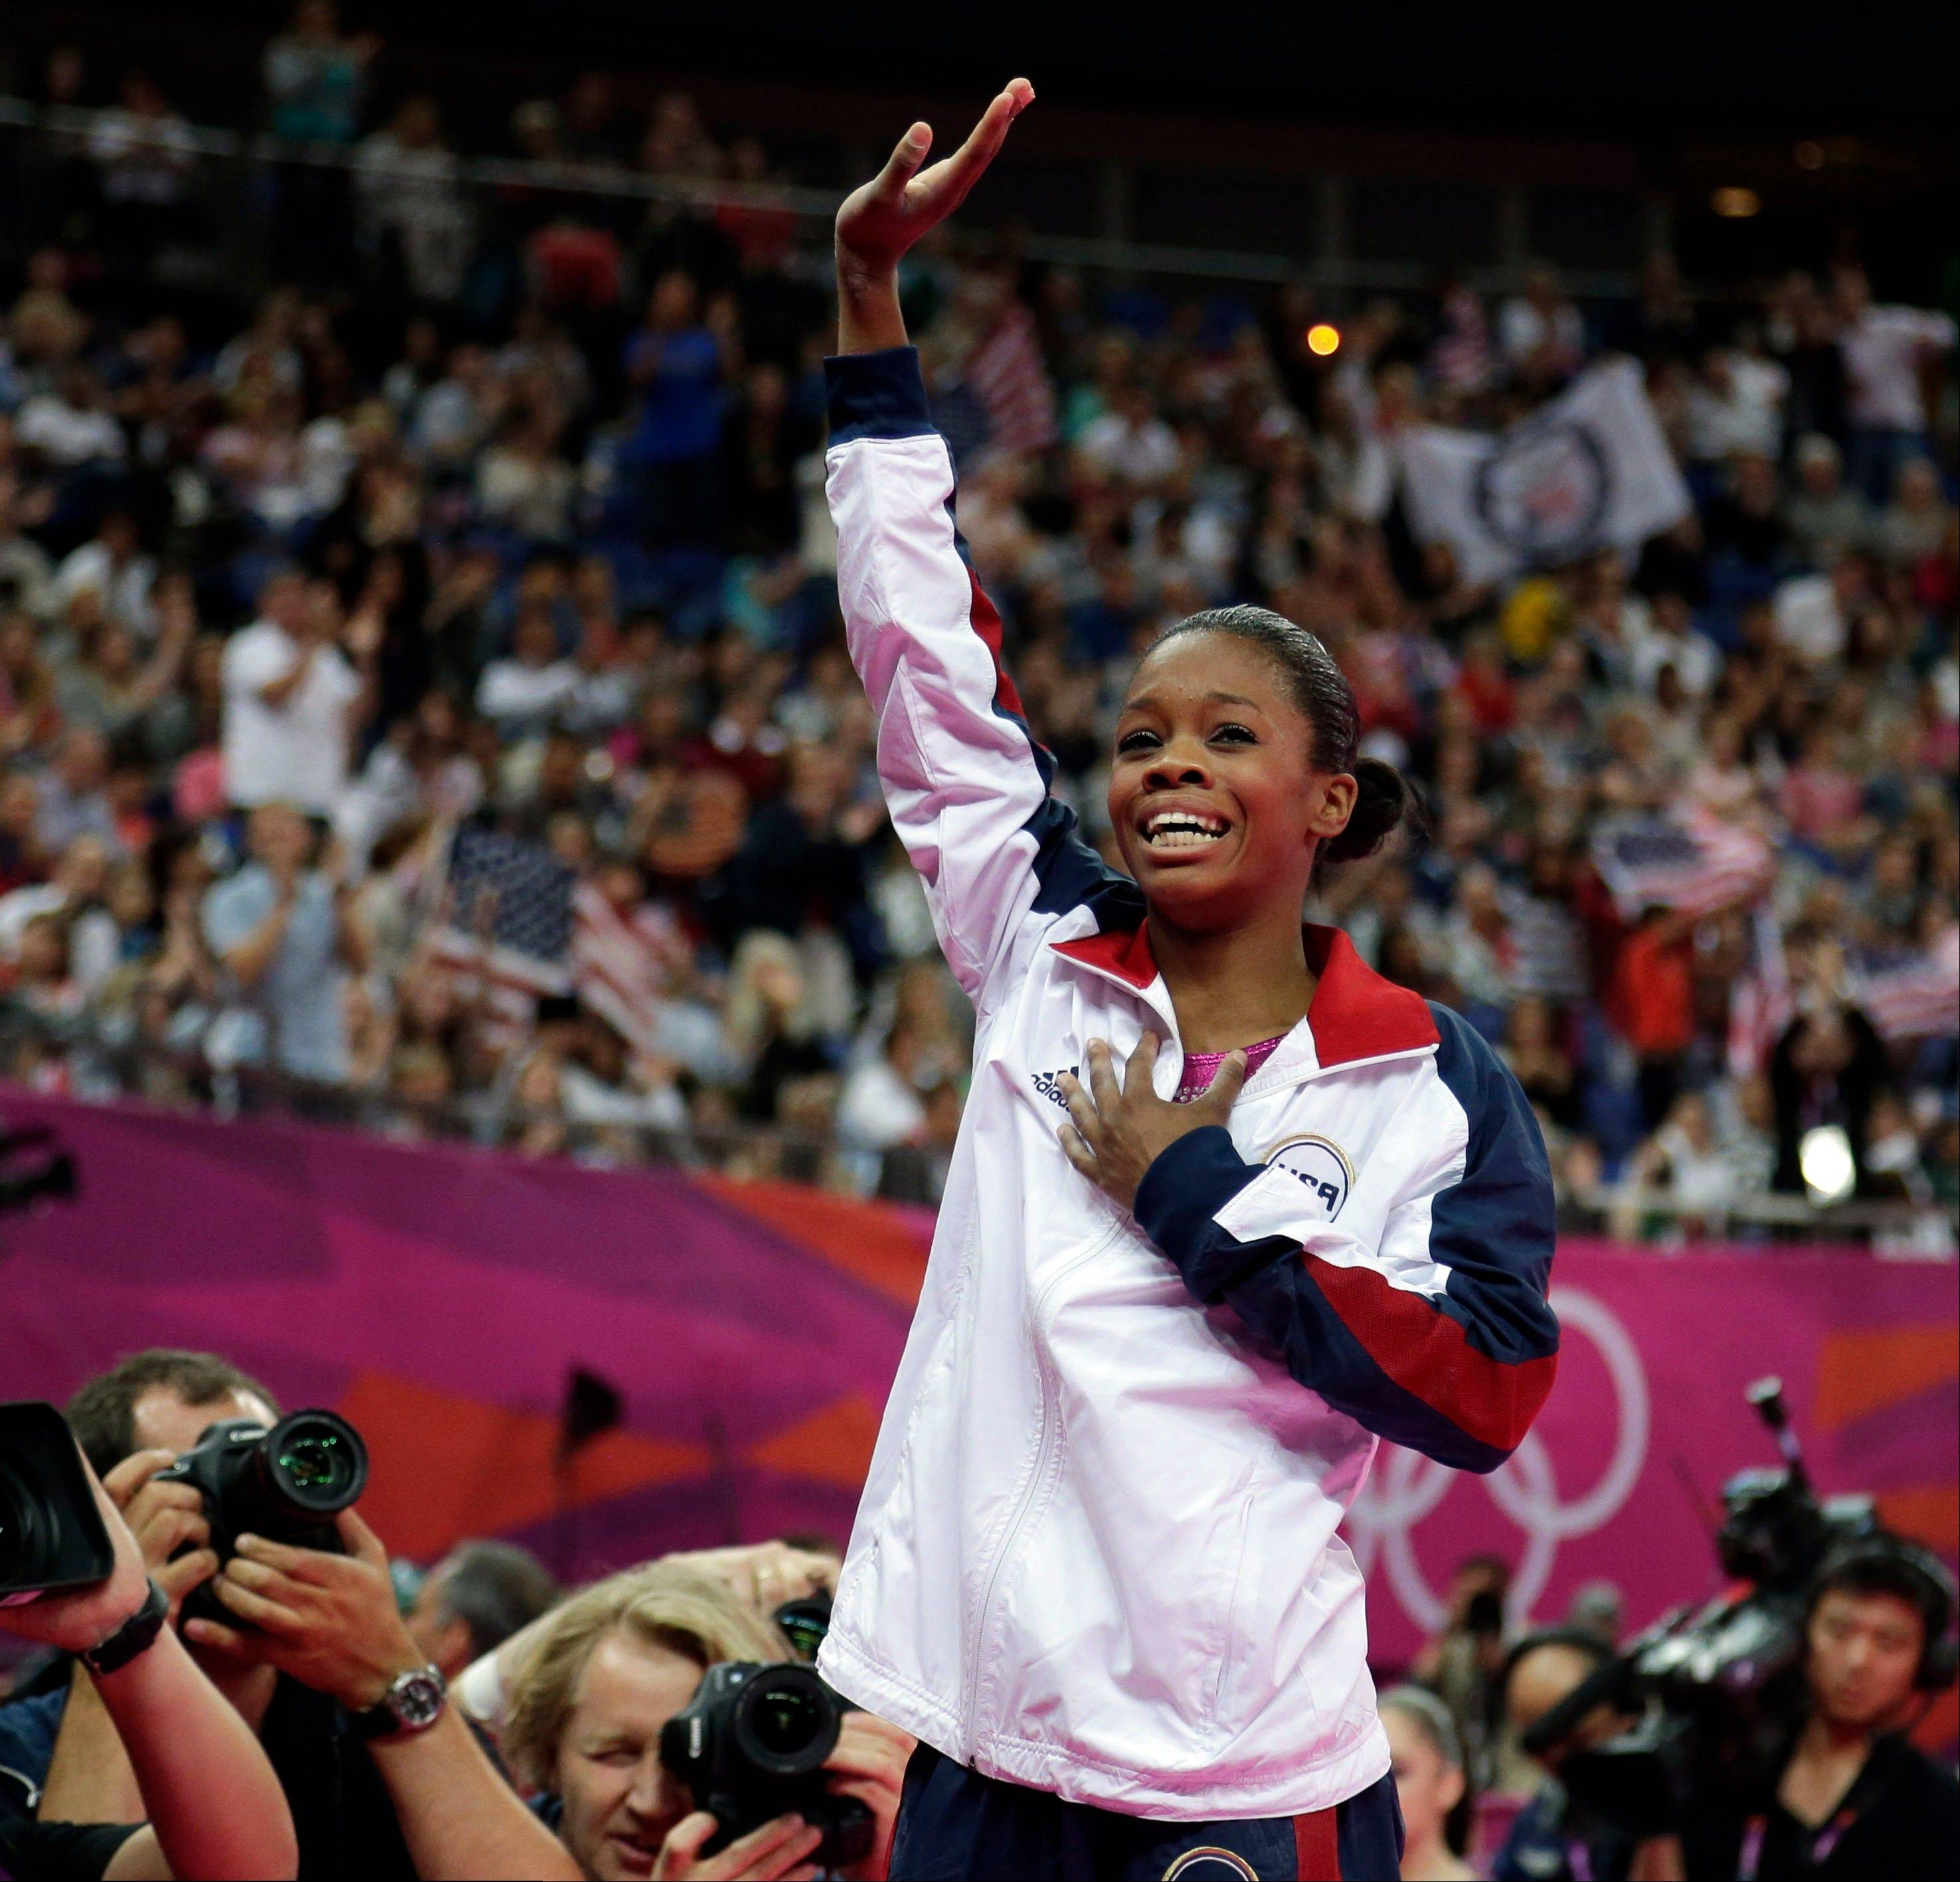 U.S. gymnast Gabrielle Douglas acknowledges the audience after being declared winner of the gold medal during the artistic gymnastics women's individual all-around competition at the 2012 Summer Olympics, Thursday, Aug. 2, 2012, in London.